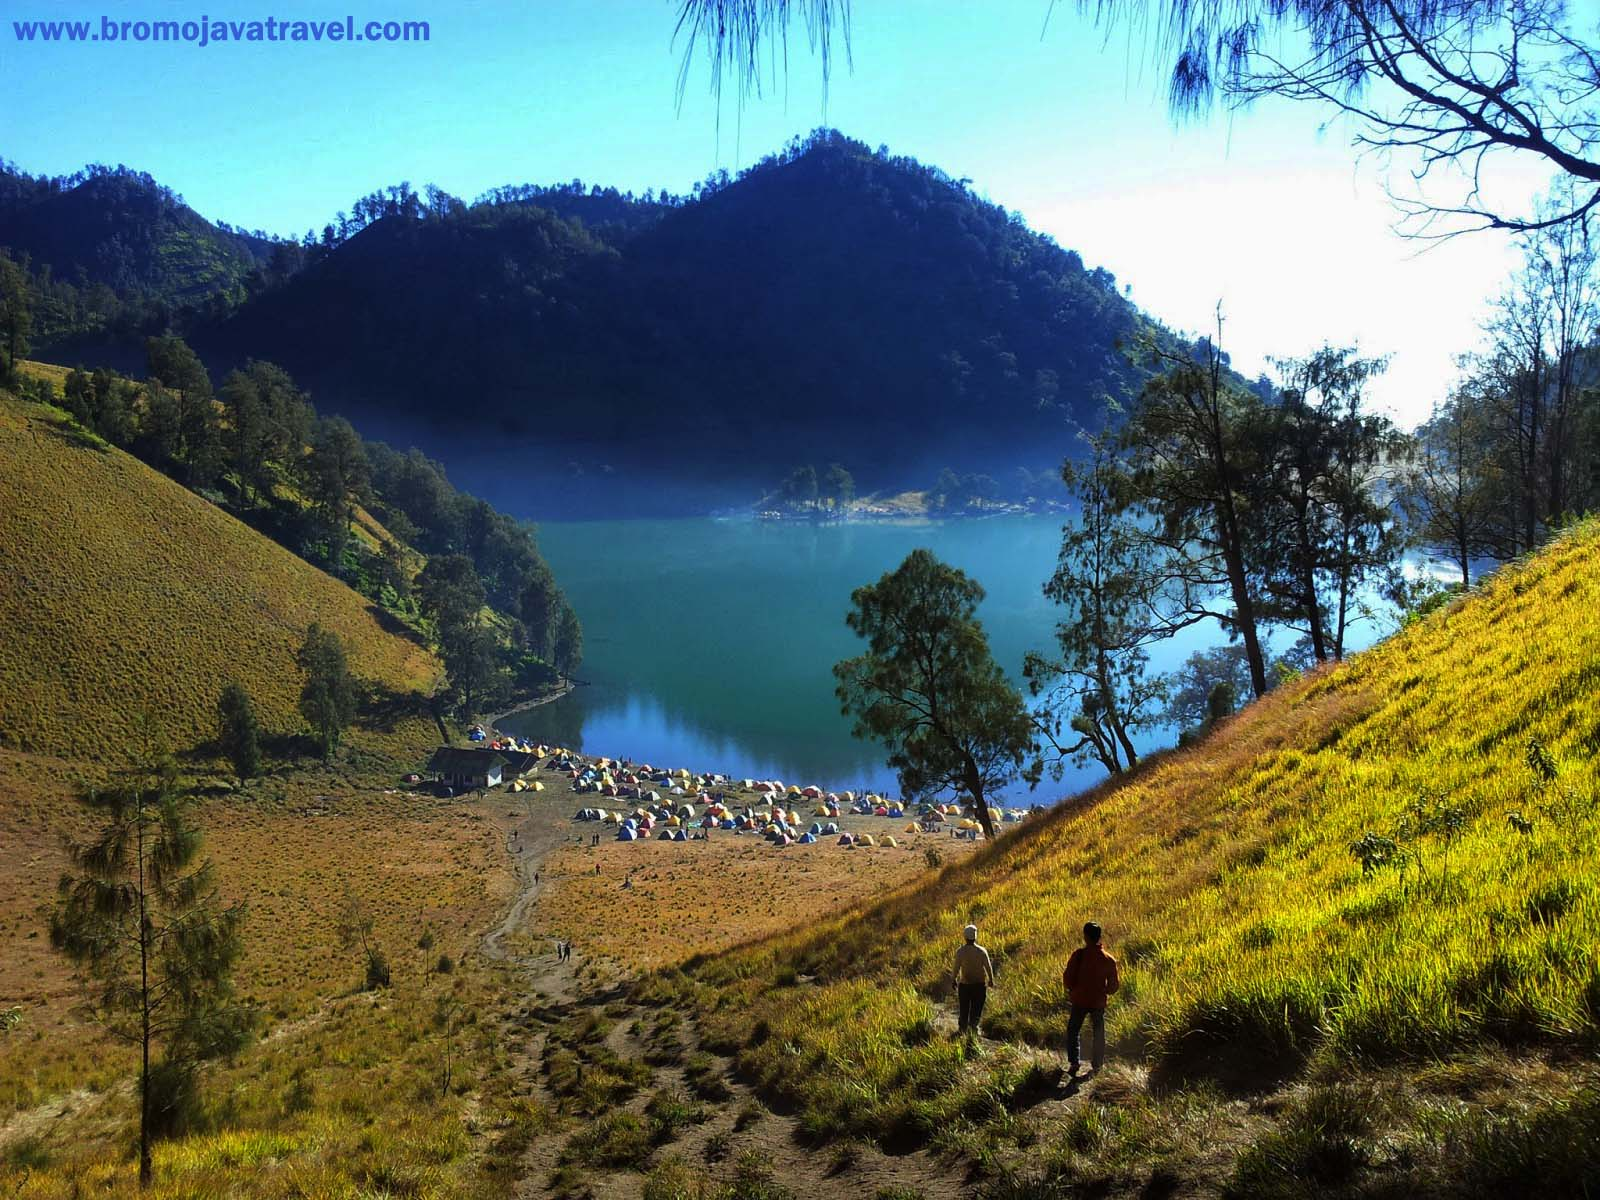 Kumbolo Lake Camping, Mt Bromo Tour Package 3 Days  Bromo Java Travel